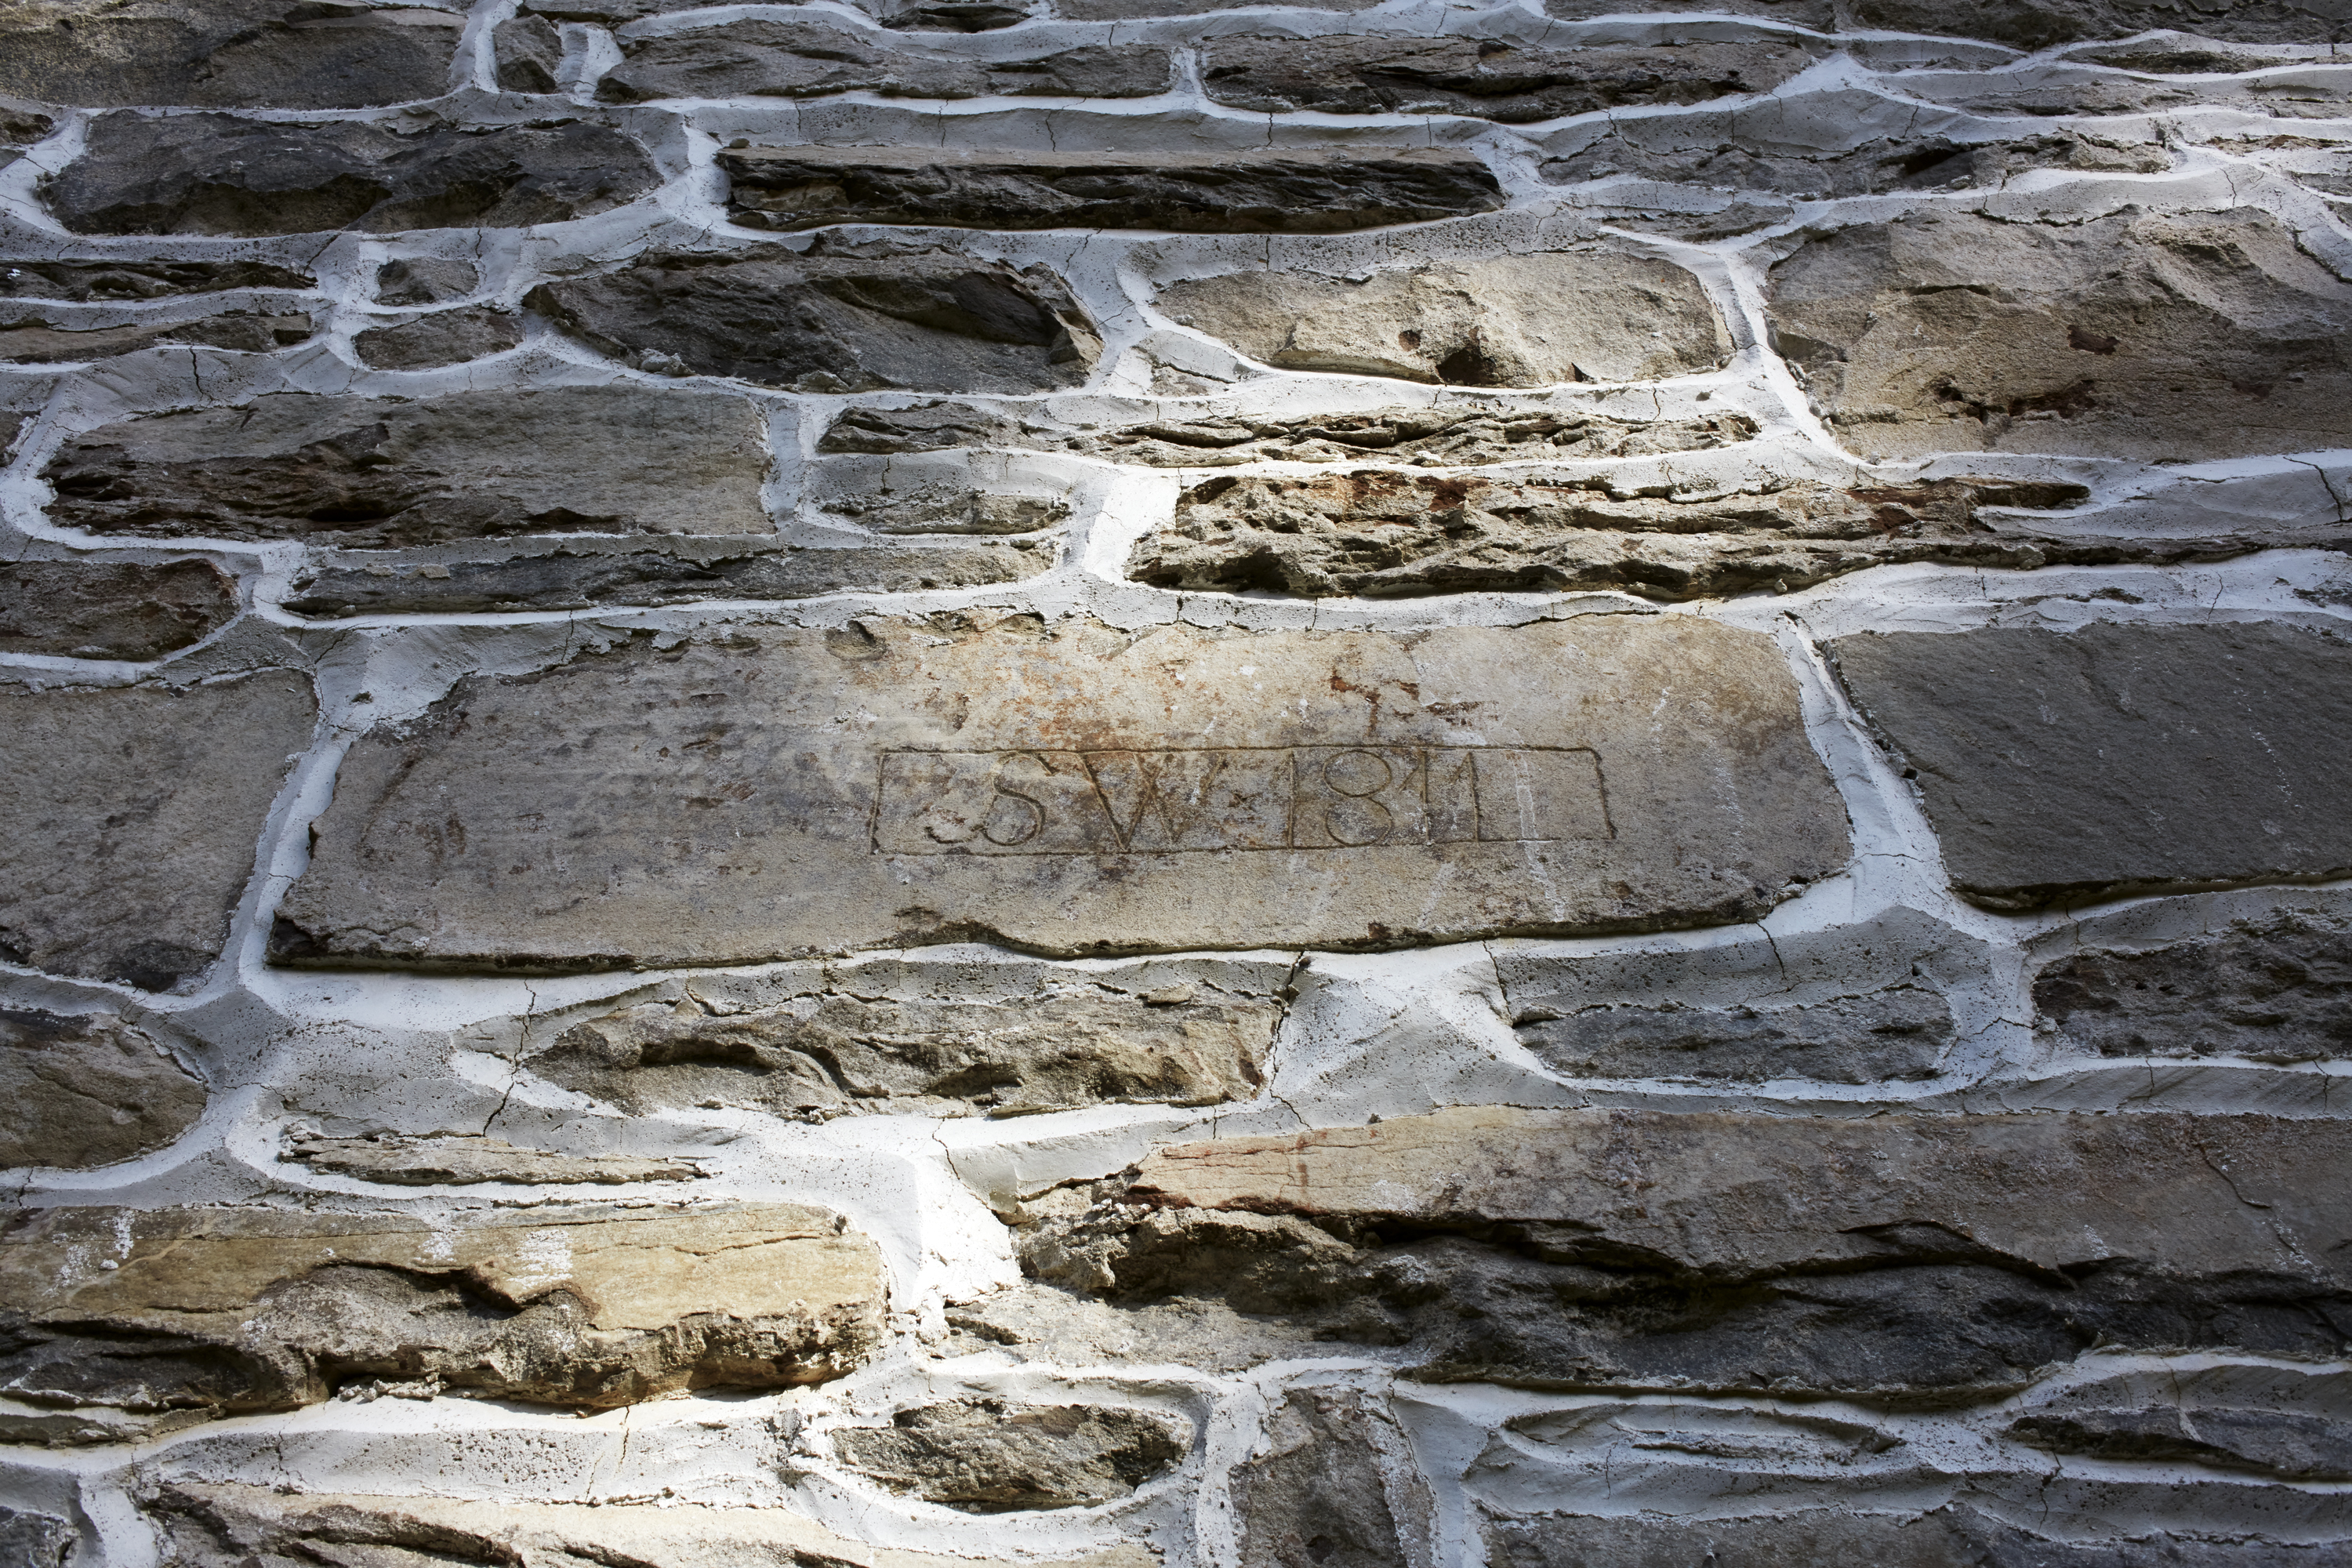 On the stone exterior, you can see SW 1911 carved.